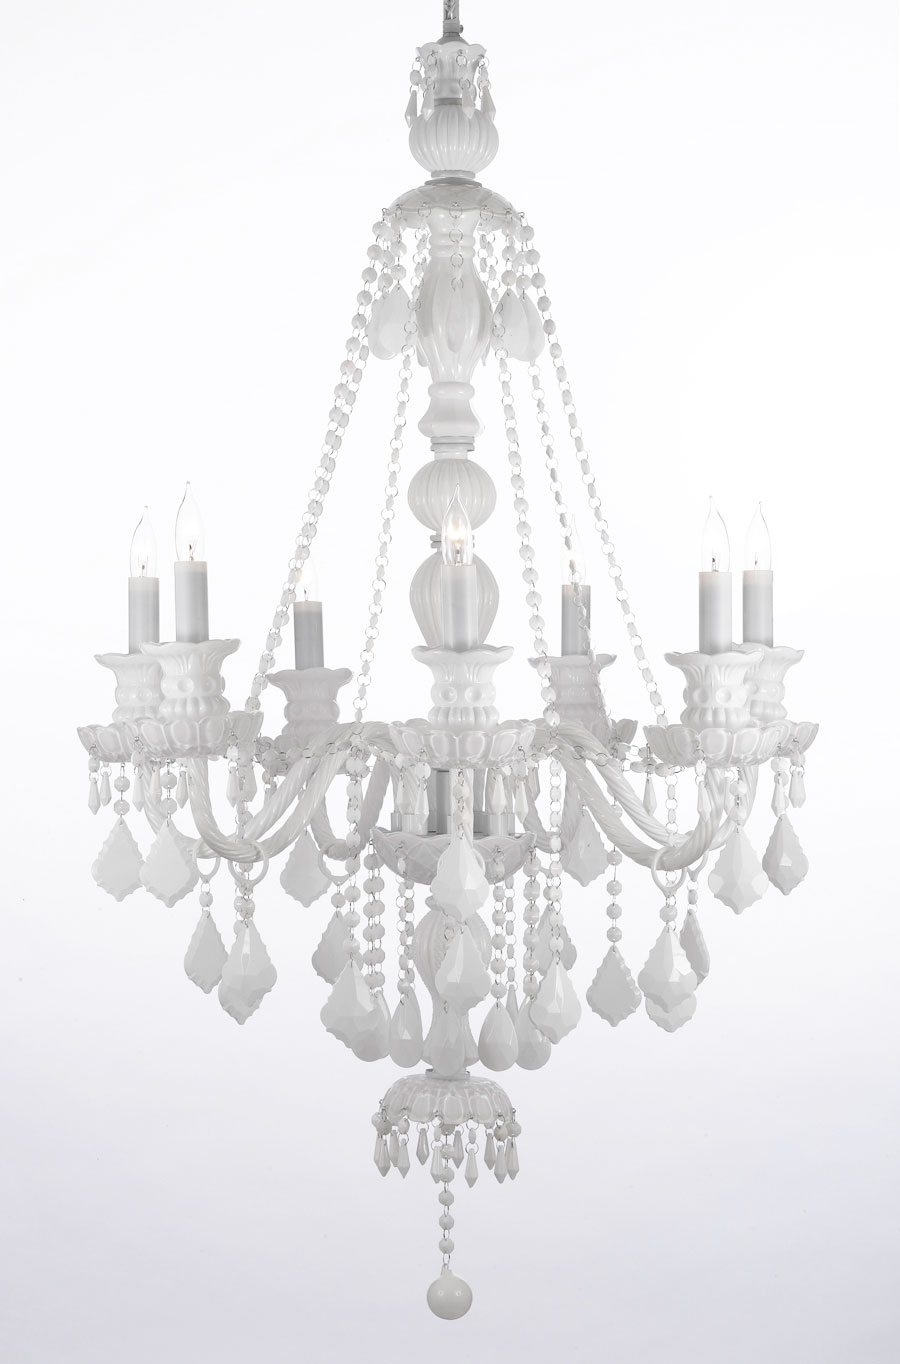 25 best collection of small white chandeliers chandelier ideas fruit and color crystal chandelier chandeliers crystal chandelier with regard to small white chandeliers image arubaitofo Gallery